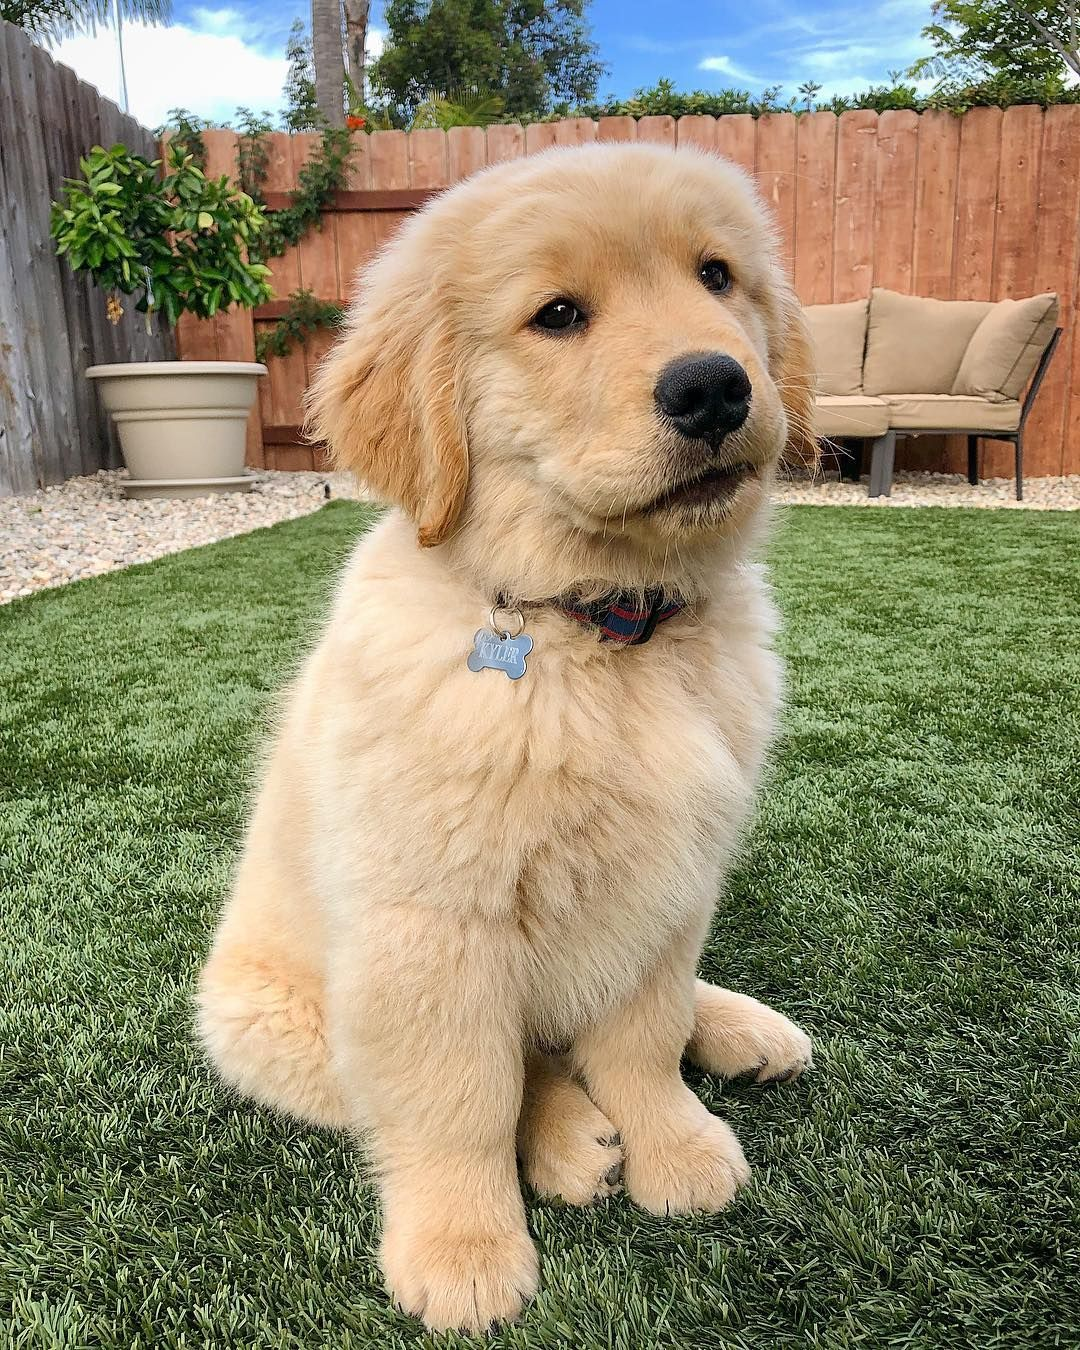 Kyler The Golden On Instagram Whatchu Looking At Never Seen